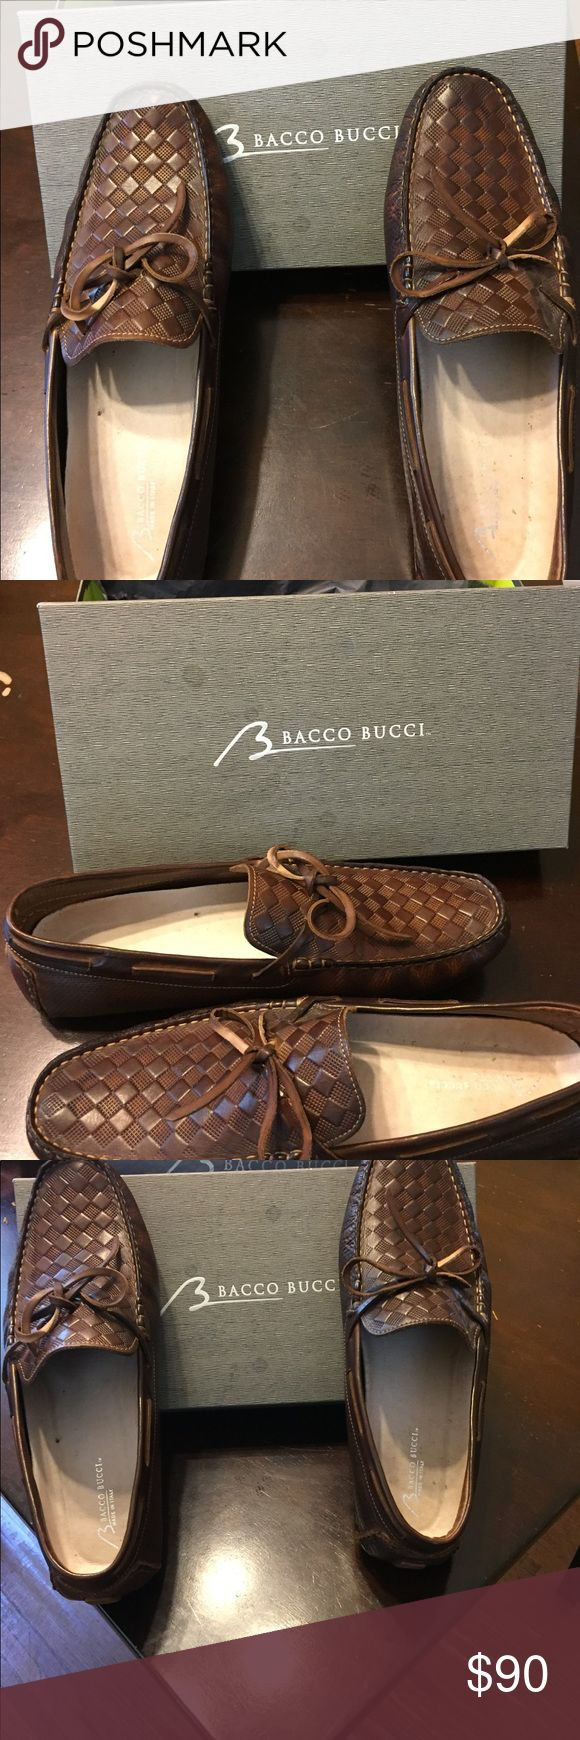 Men's Bacco Bucci Size 13 Italian Leather Loafers New Men's Size 13 Brown Italian Leather Loafers by Bacco Bucci. Exquisite design and comfort. Very unique square pattern design on the upper of the shoe. Great for fall, summer or spring. Bacco Bucci Shoes Flats & Loafers